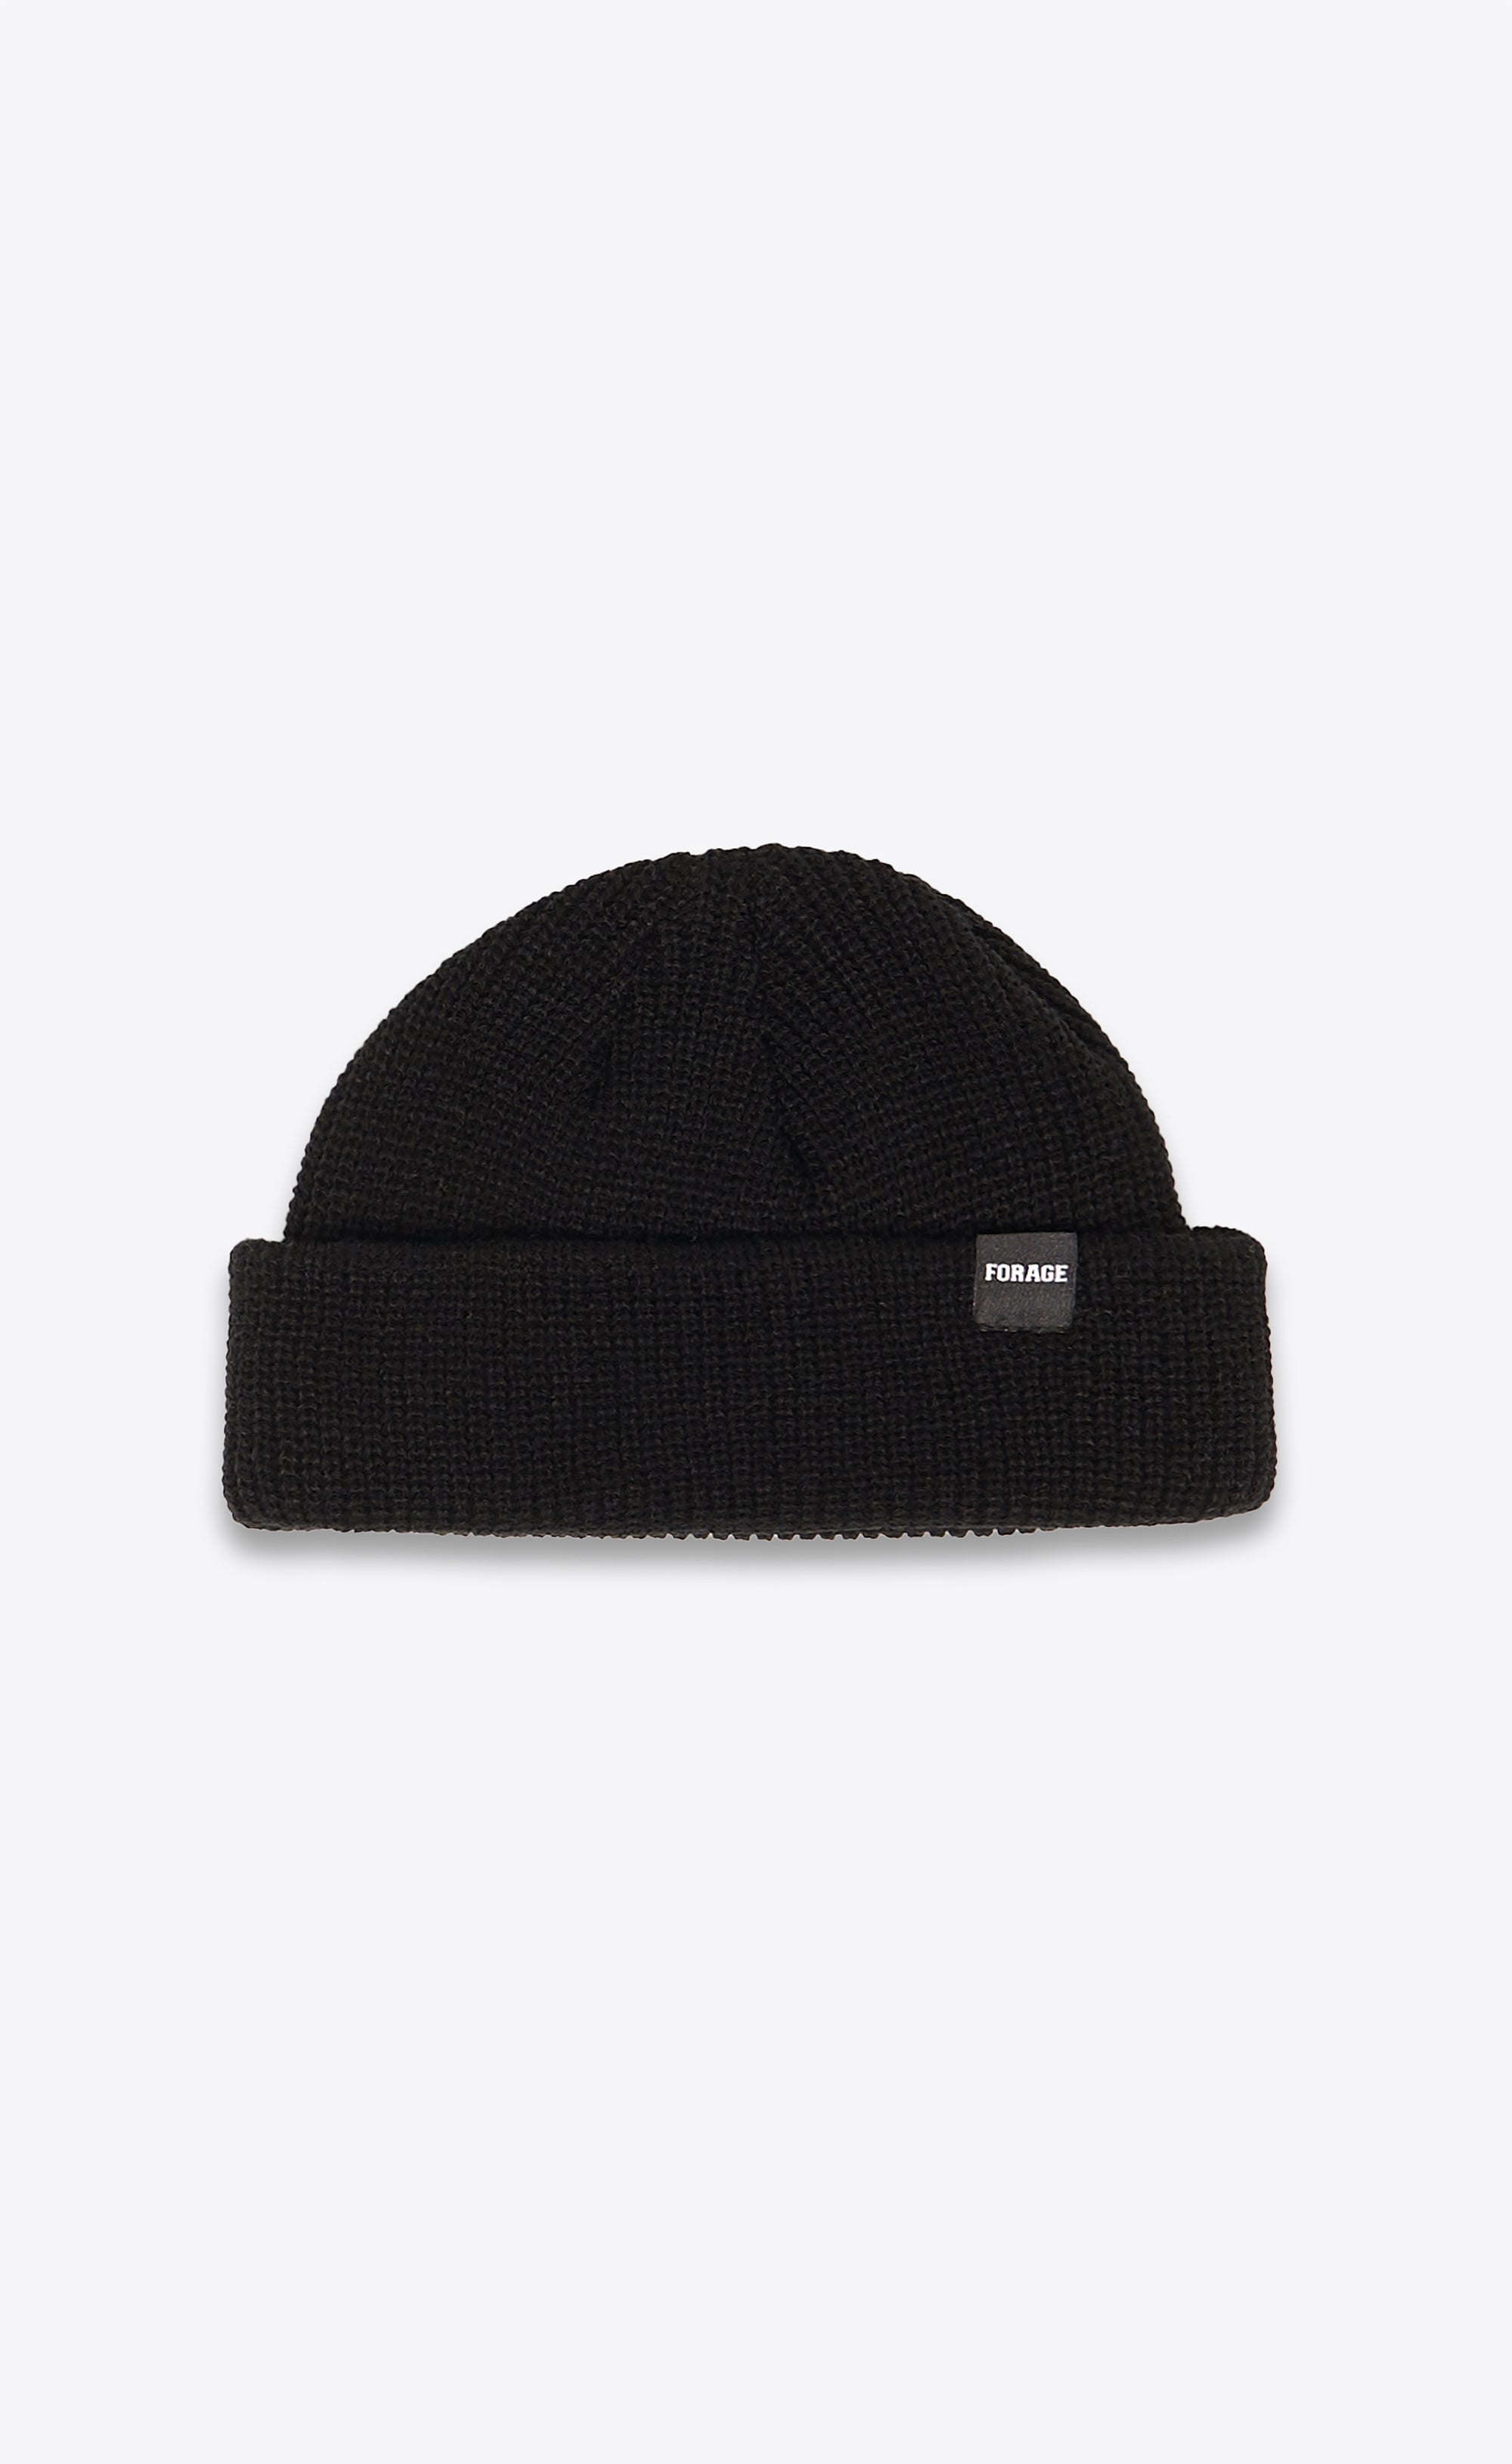 FISHERMAN BEANIE - BLACK - Forage-Clothing